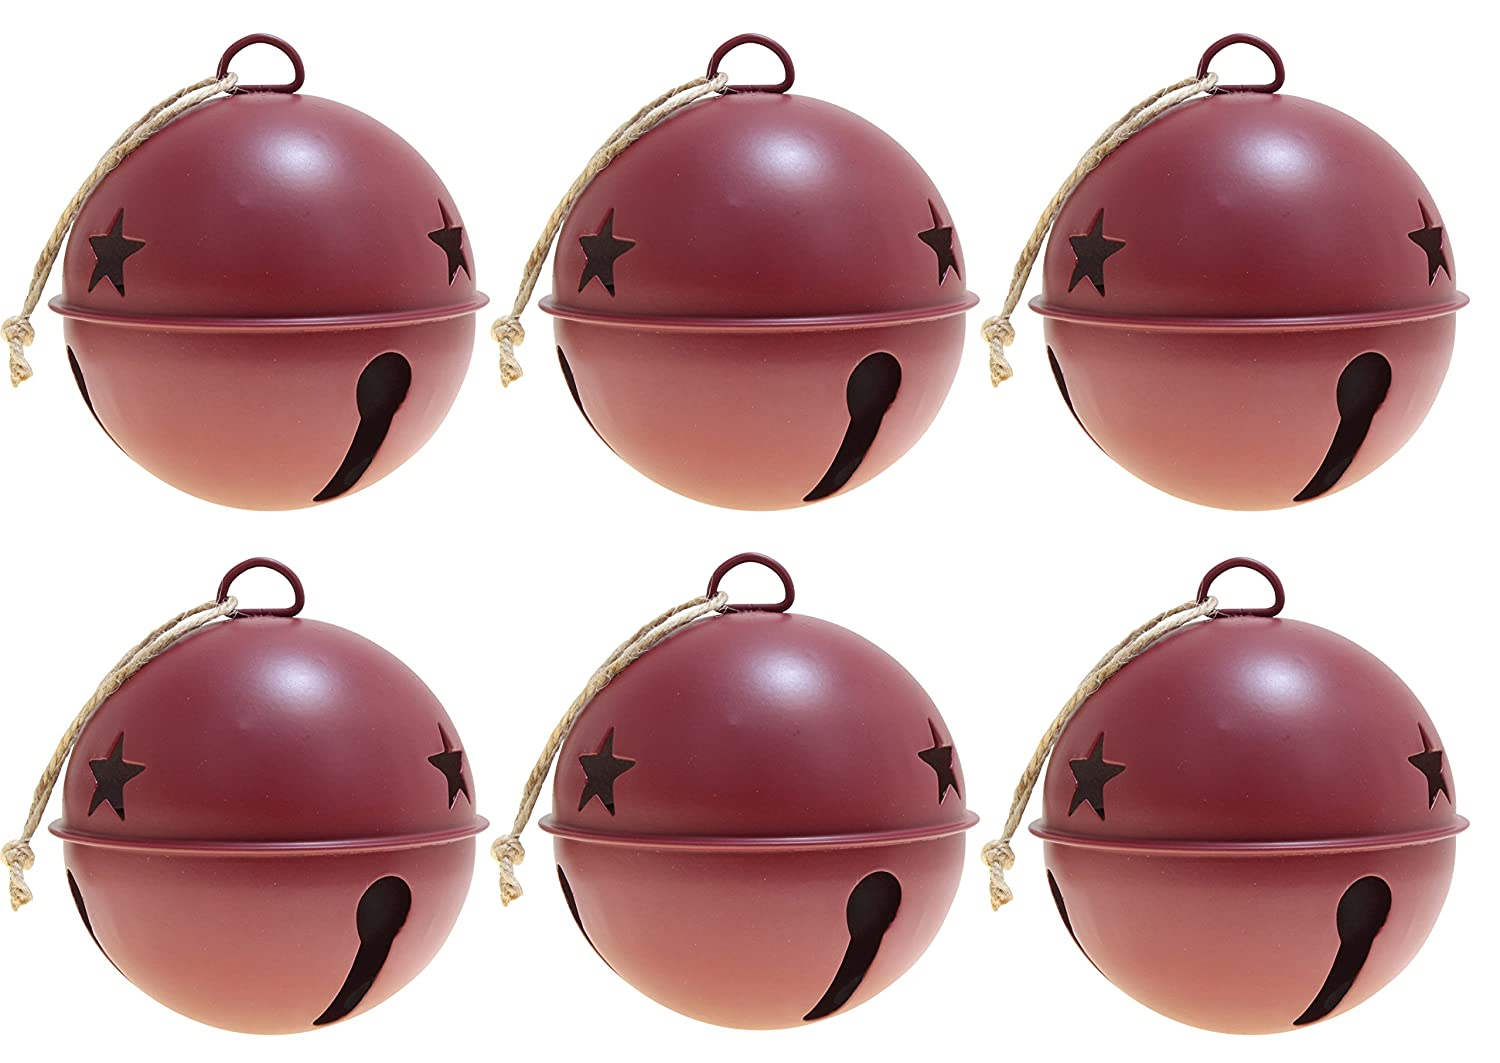 Jingle Bell Ornaments, 3.35-inch diameter, 6-pack (Assorted (Silver, Red & Green)) Haute Decor